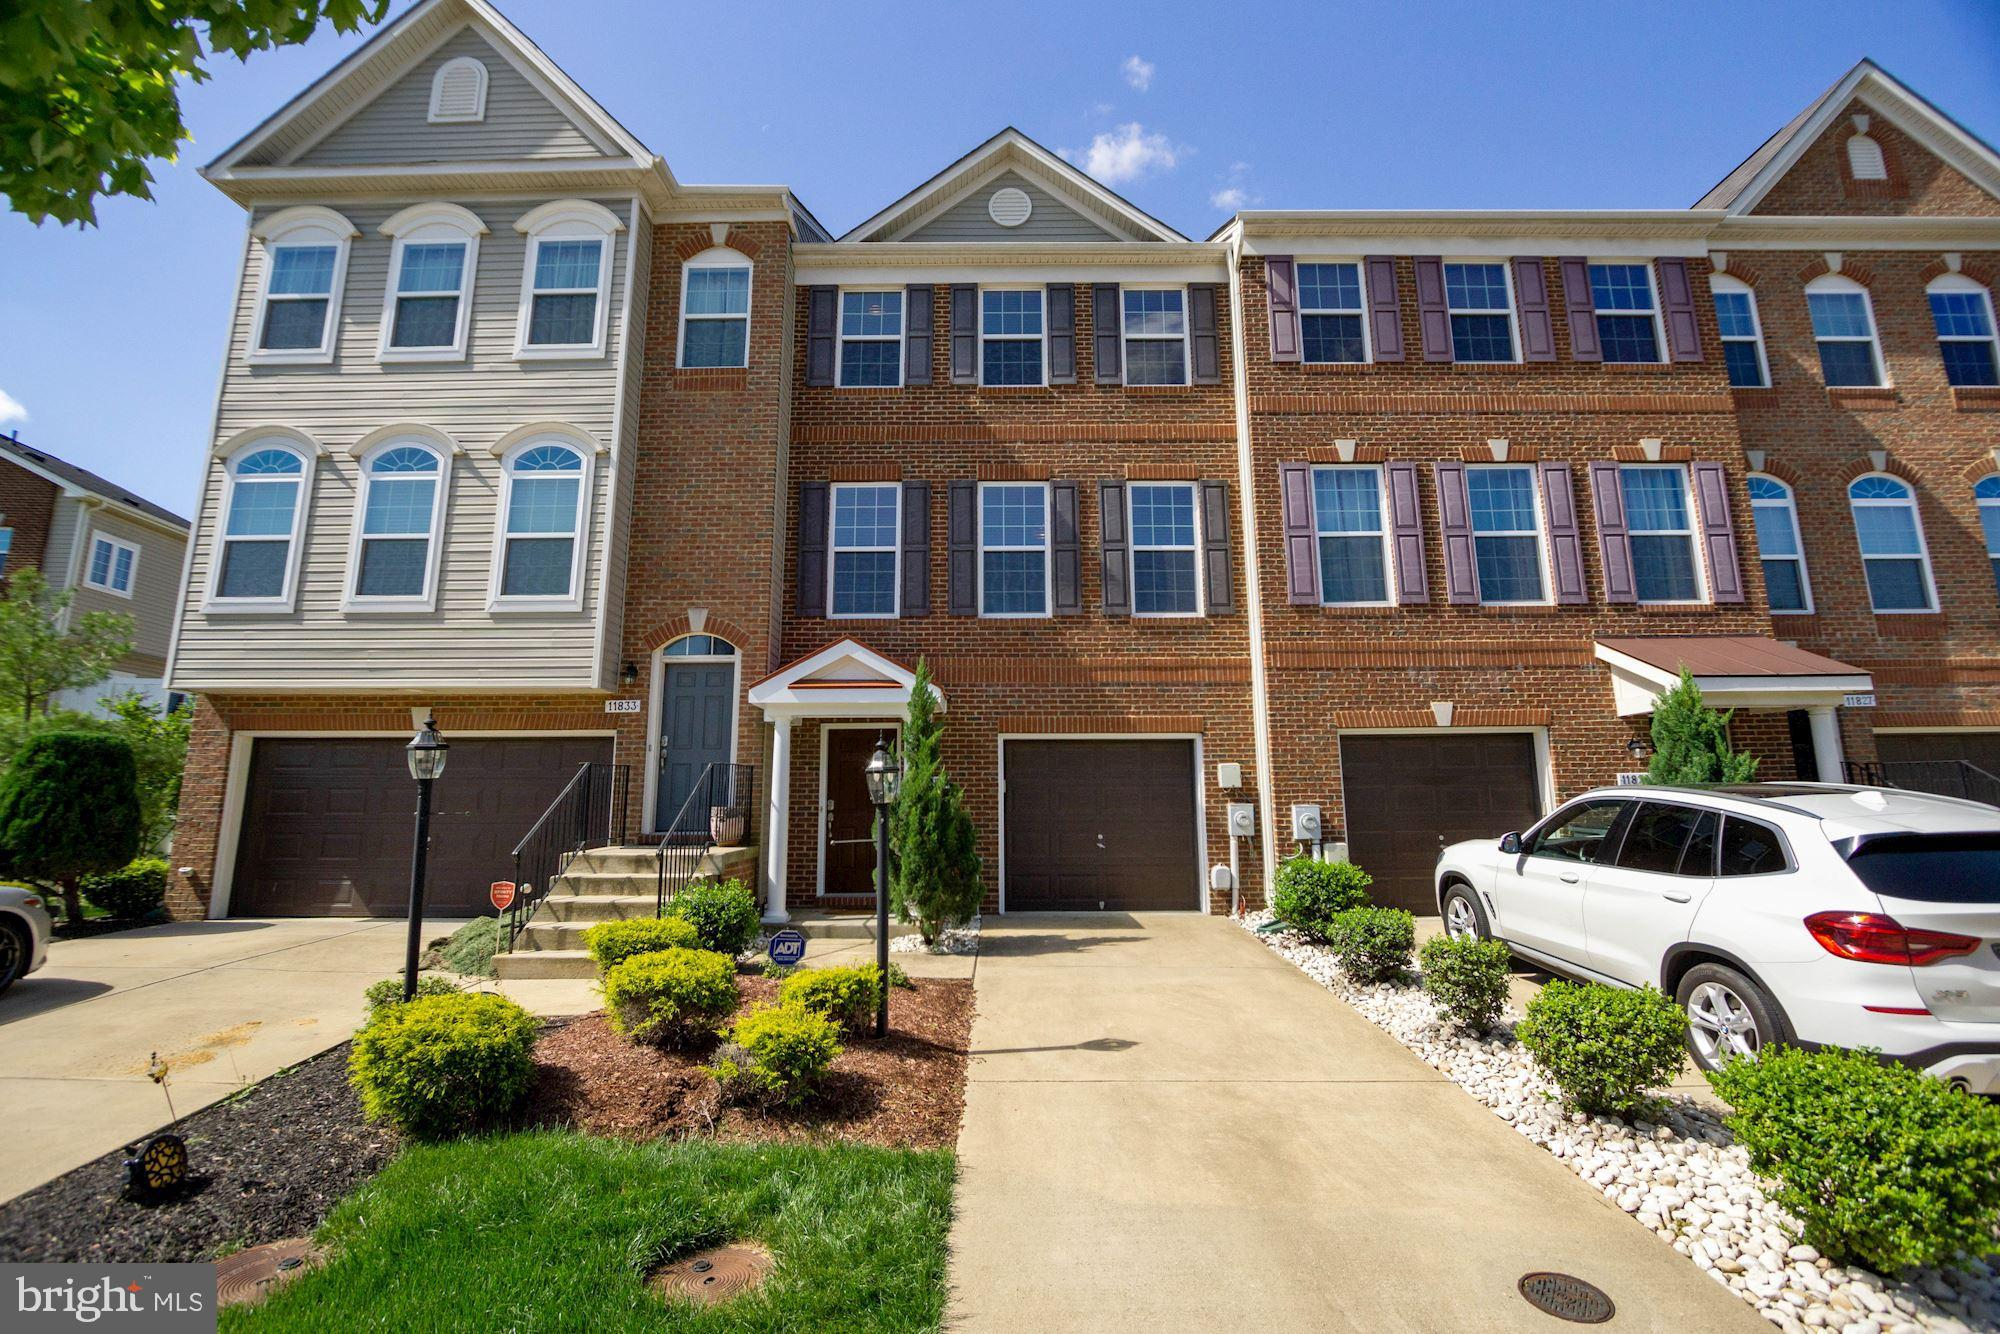 Welcome home to 11831 Sunset Ridge Pl! This luxurious 3 bedroom / 2.5 bath townhouse is available in